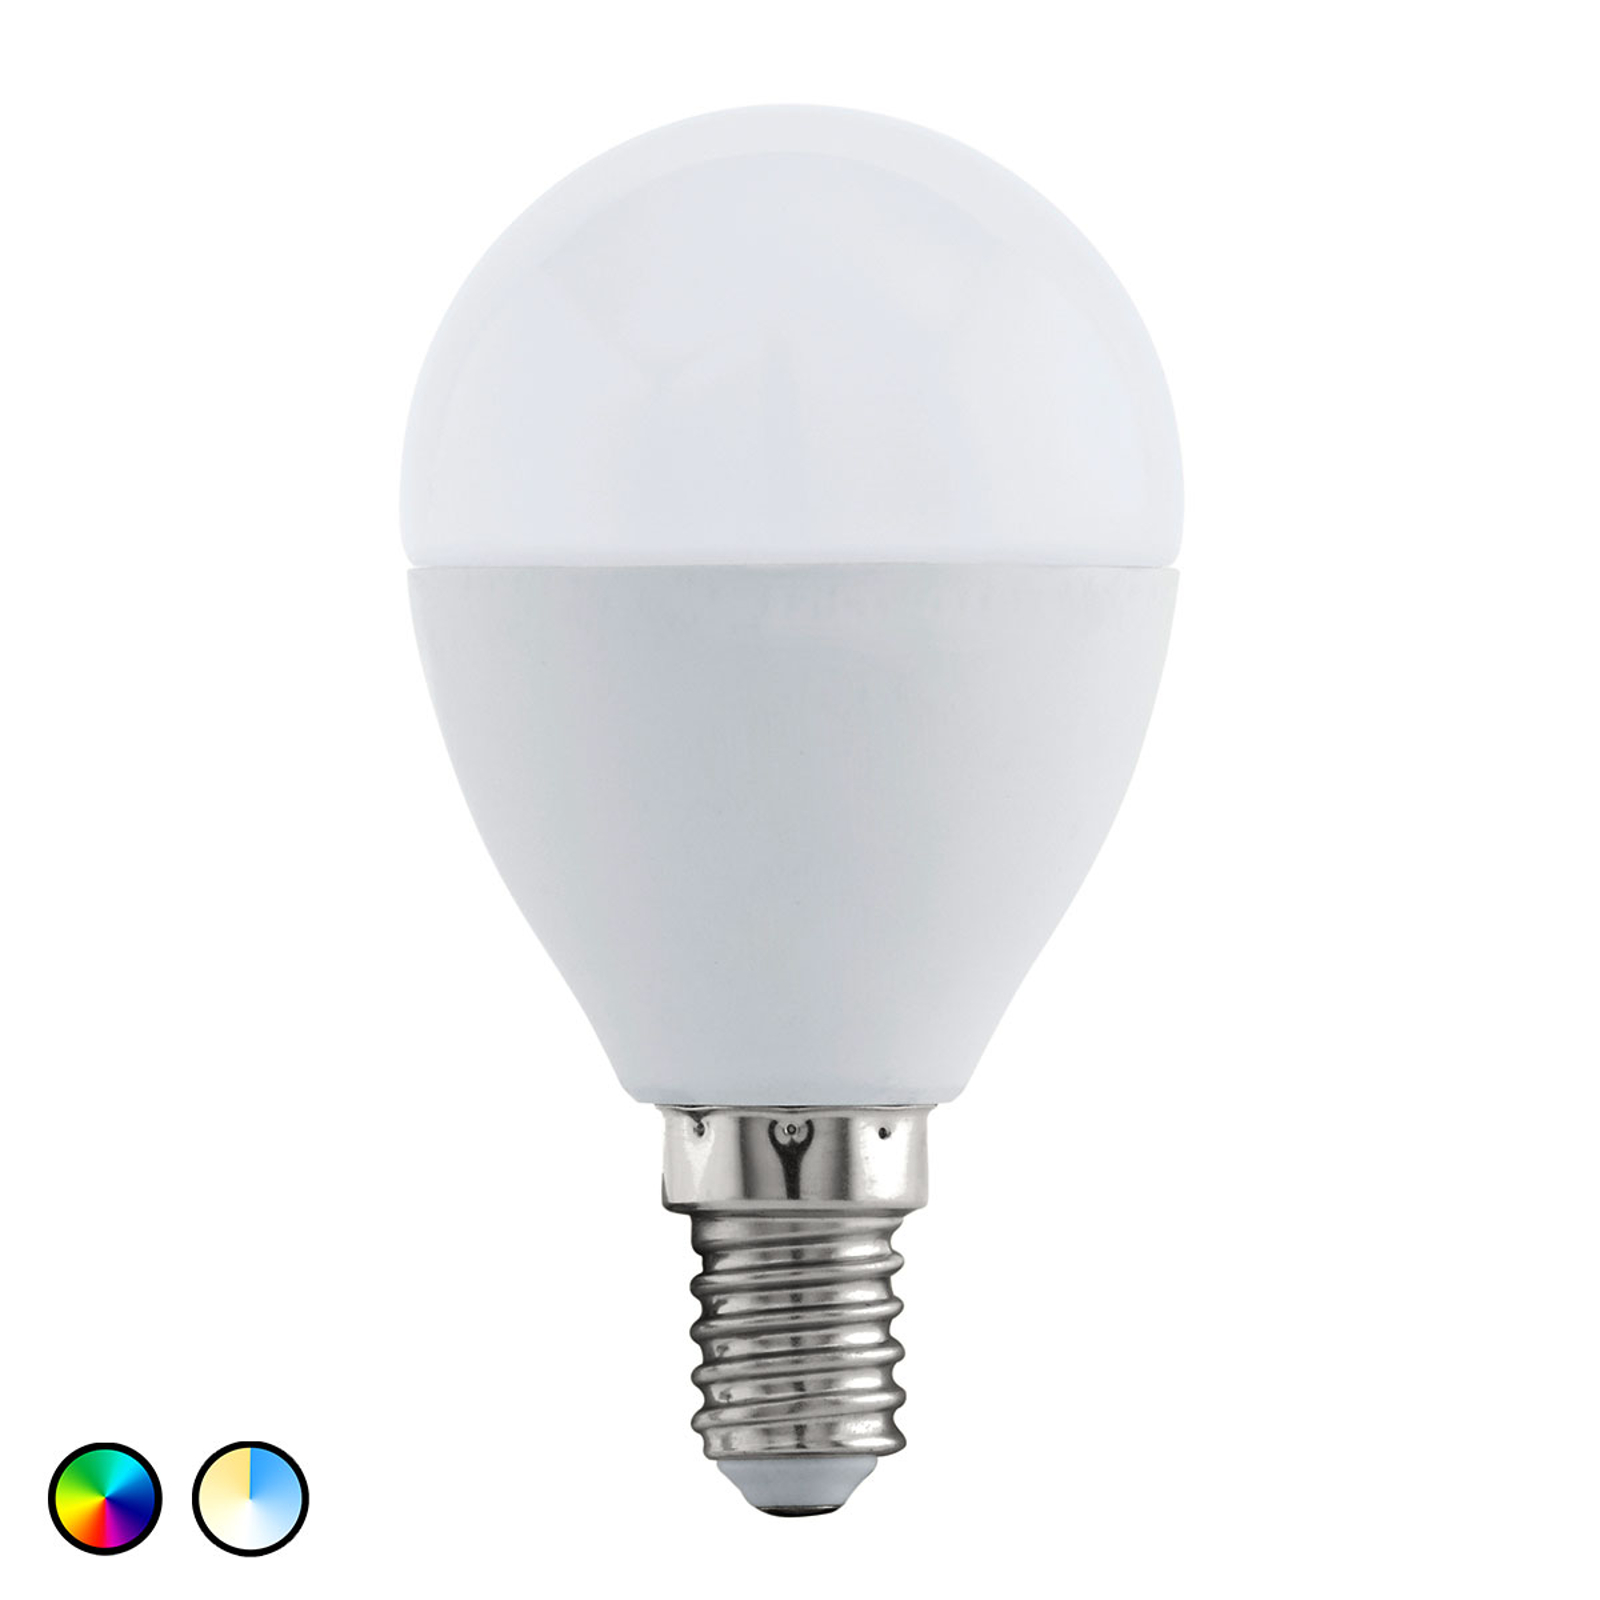 EGLO connect E14 5 W LED RVB Tunable White